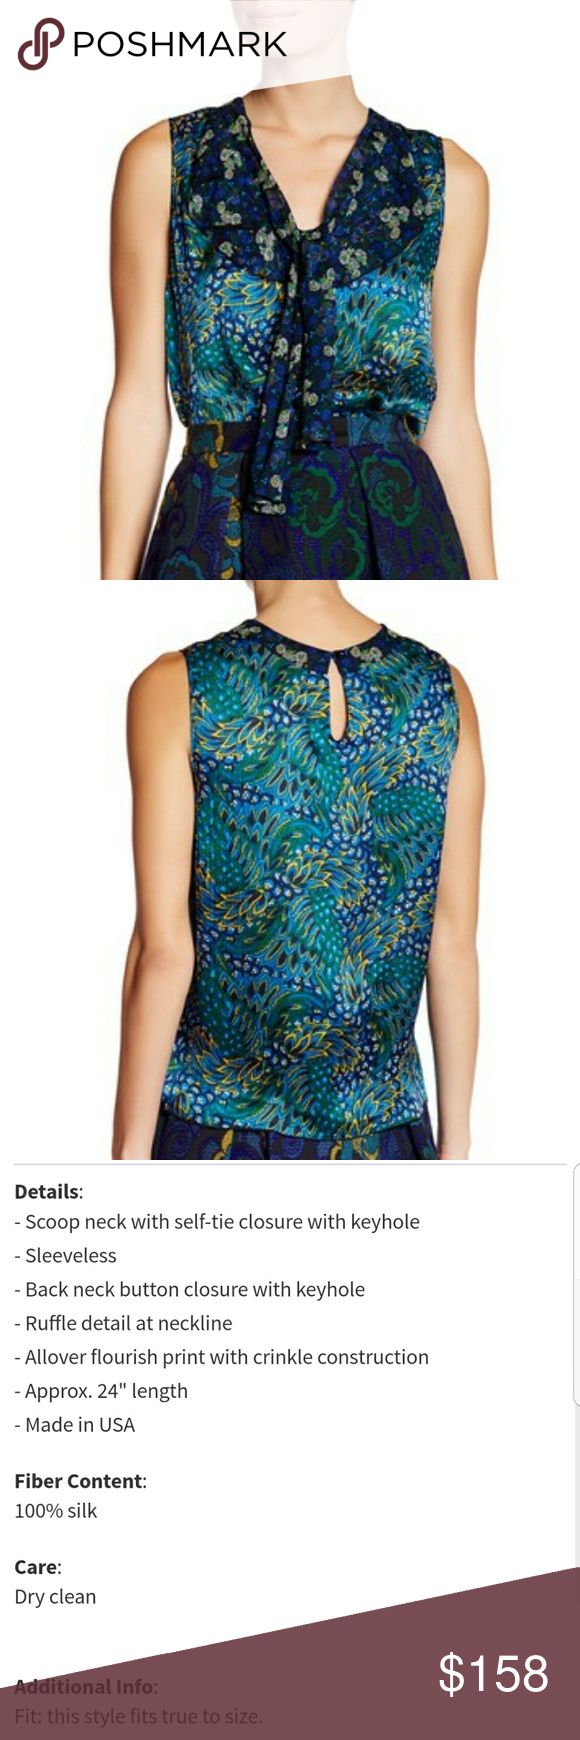 NWT *Final Price* Anna Sui peacock top Brand new with tags Anna Sui peacock top Anna Sui Tops